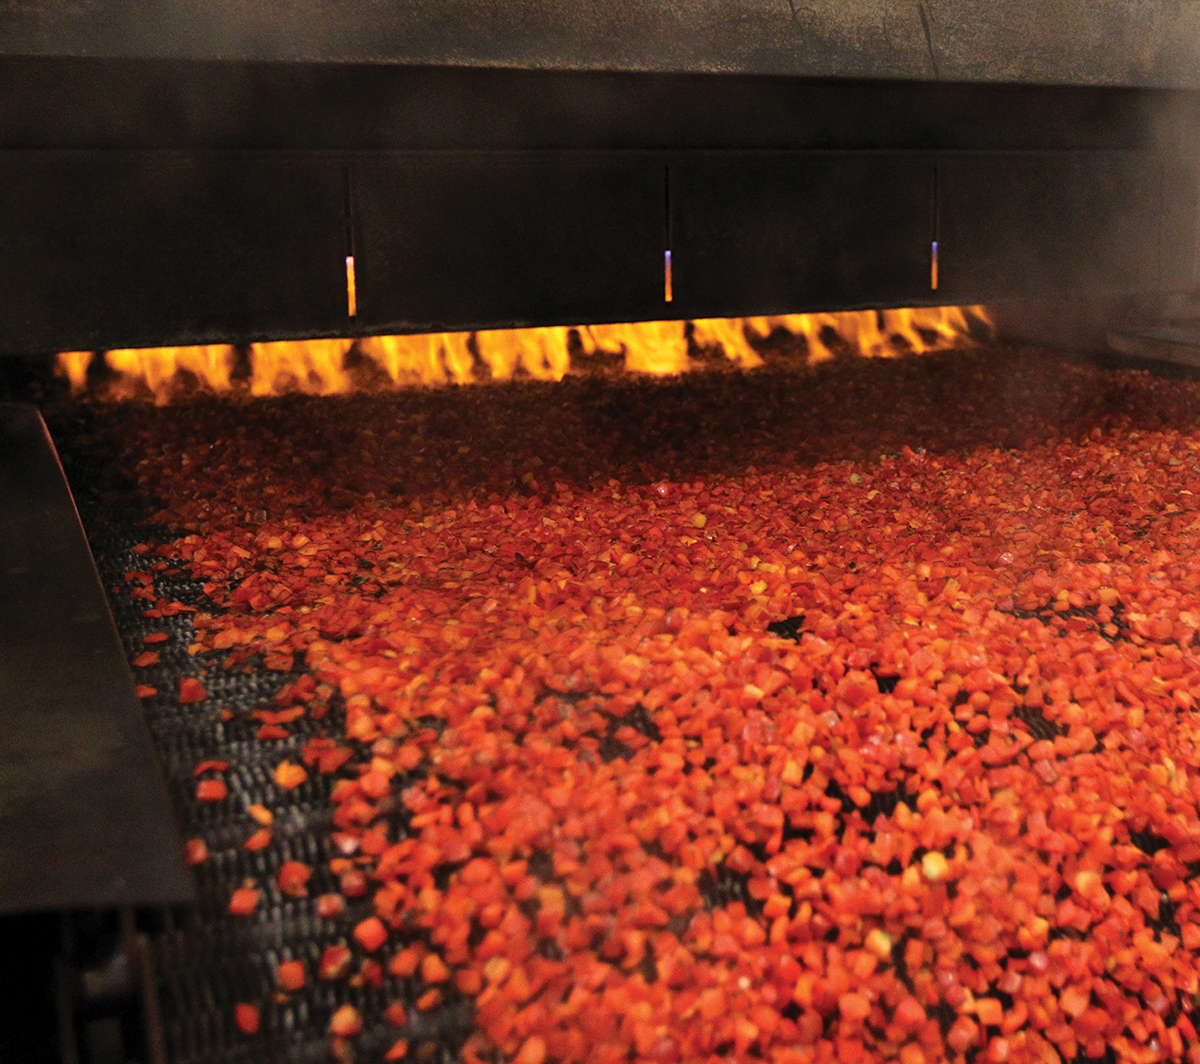 Diced Red Bell Peppers being flame roasted